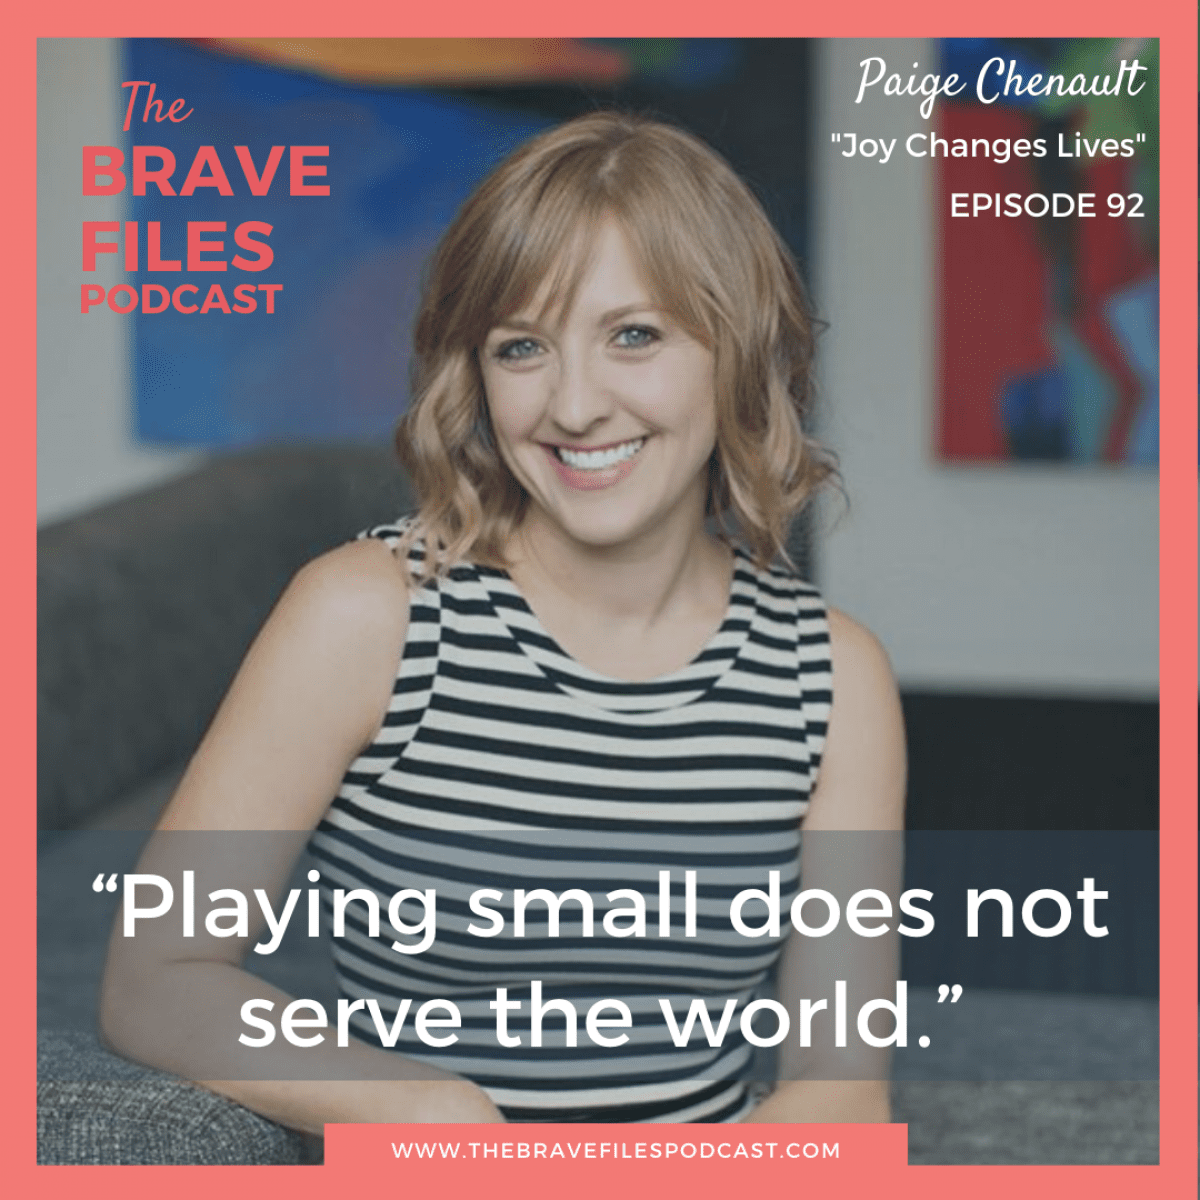 Paige Chenault, founder of The Birthday Party Project, encourages us to live bigger and spread joy in order to change lives. The Brave Files.